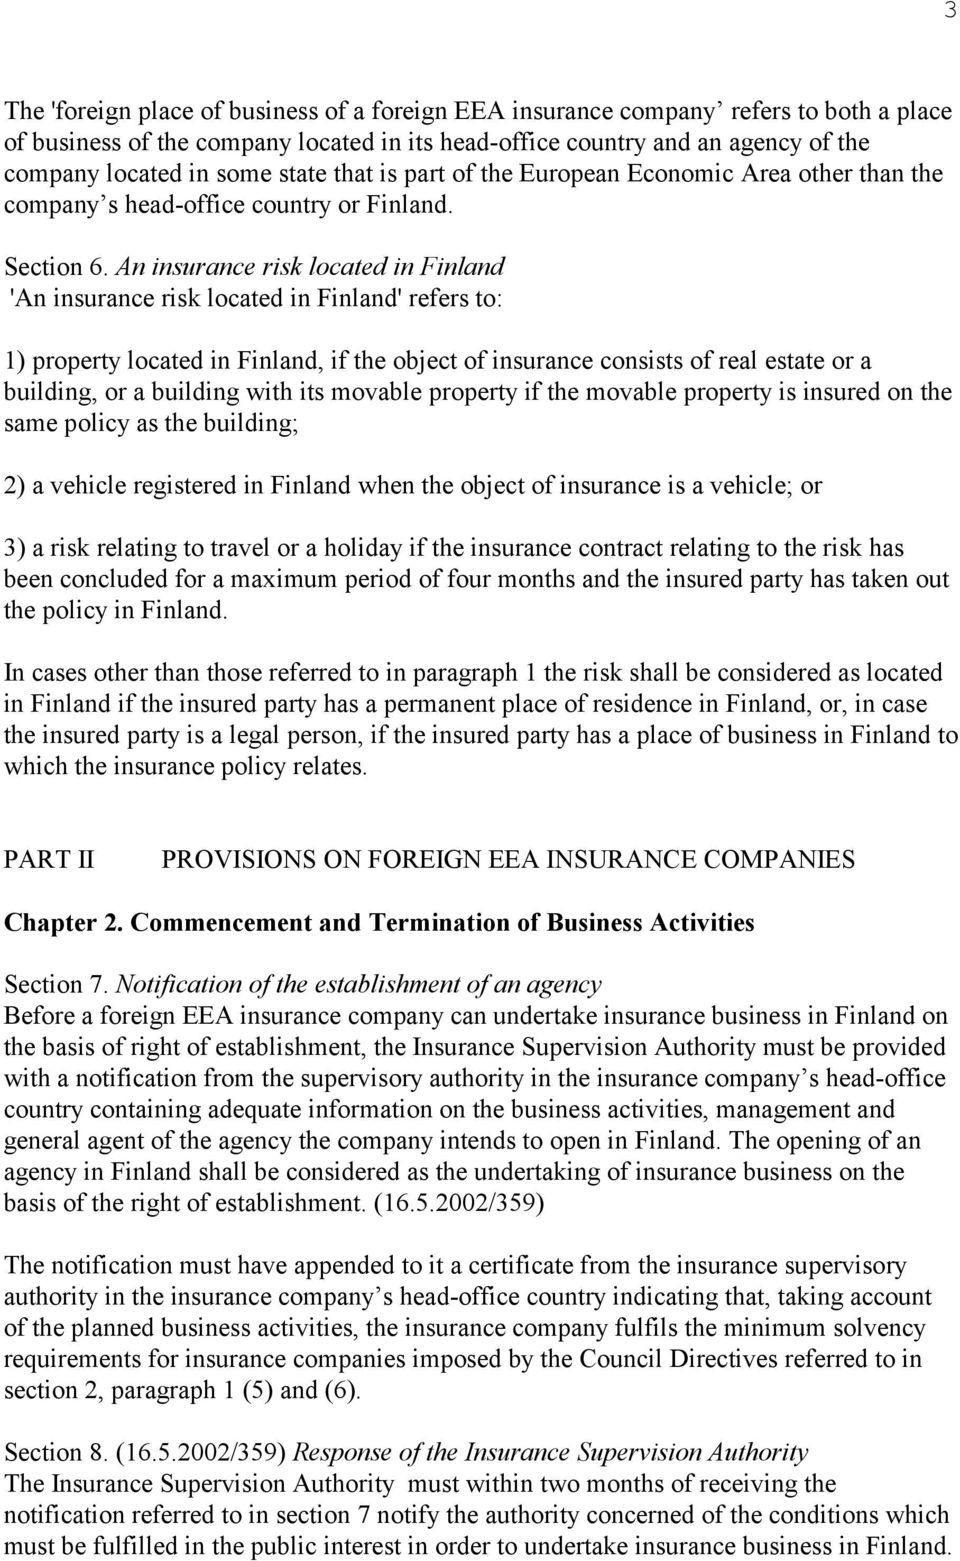 An insurance risk located in Finland 'An insurance risk located in Finland' refers to: 1) property located in Finland, if the object of insurance consists of real estate or a building, or a building